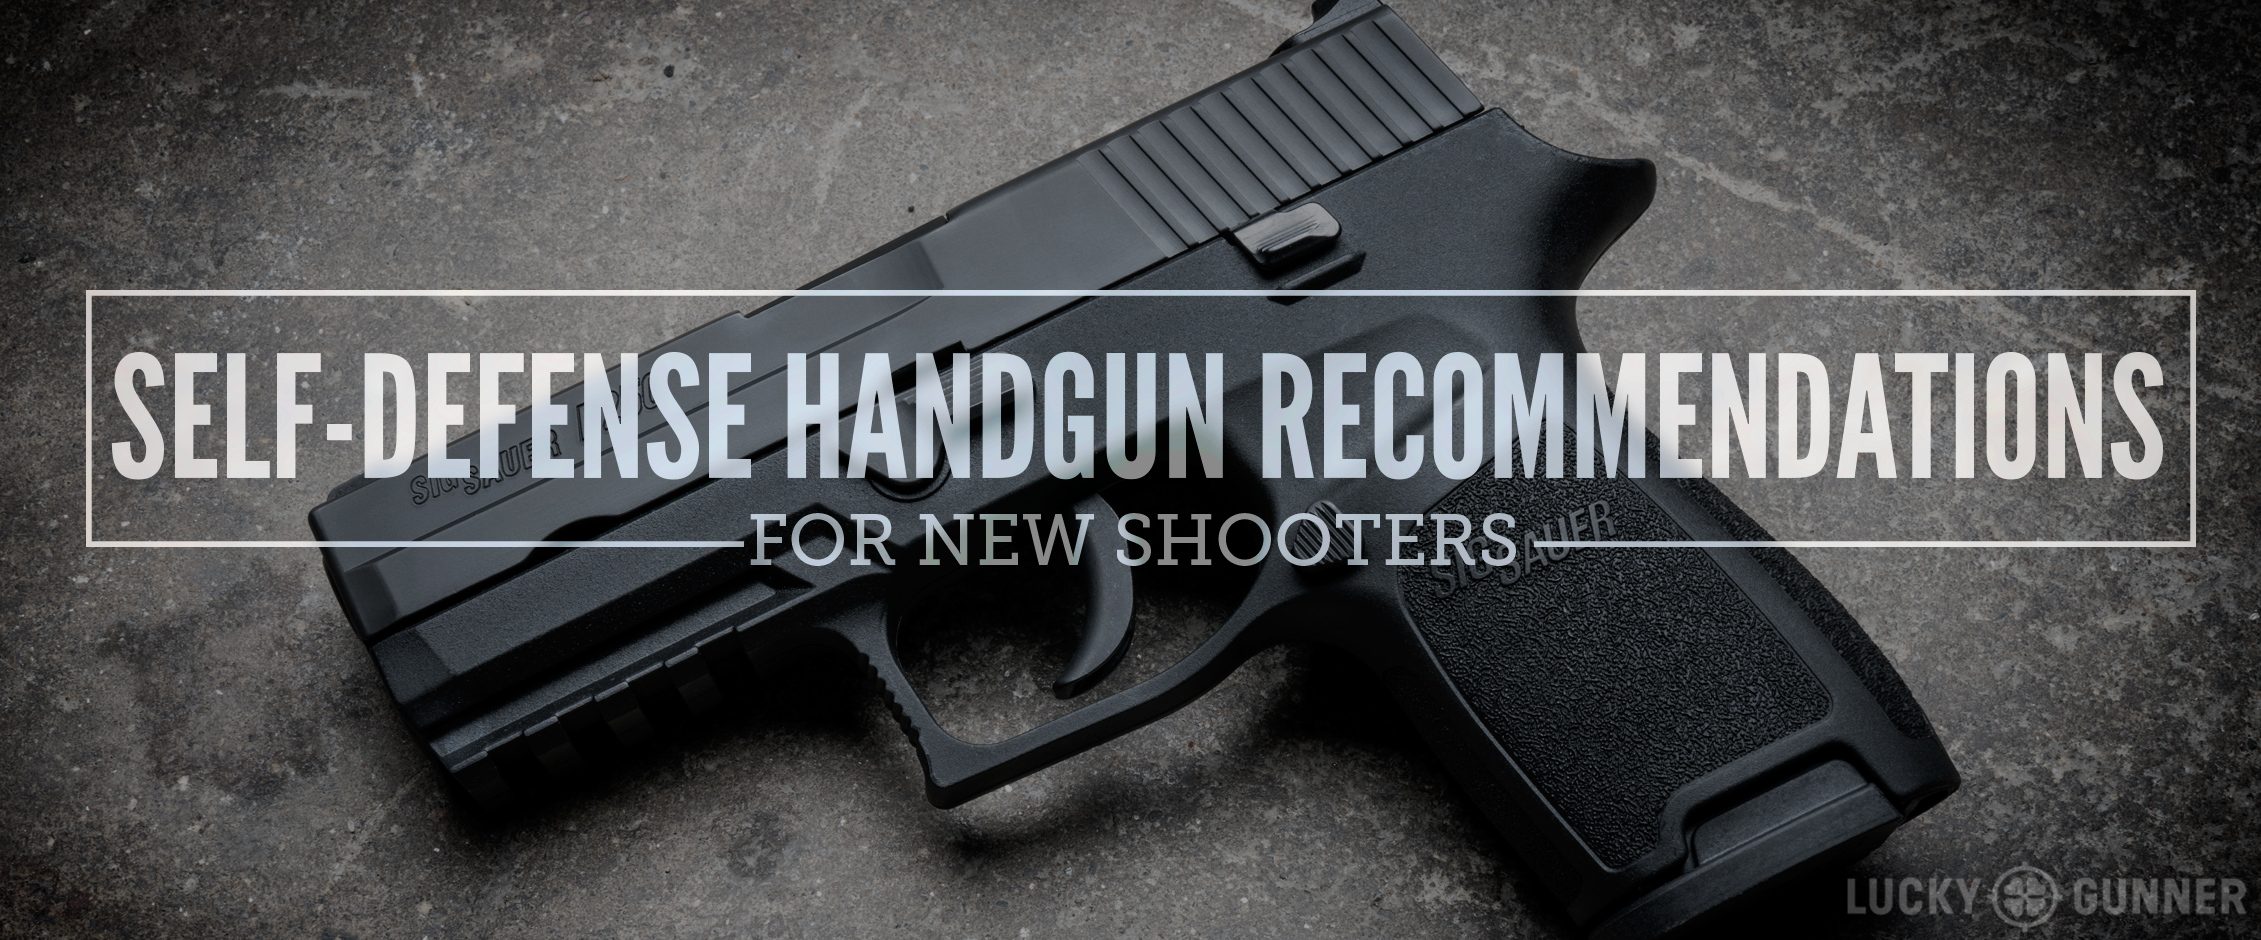 Handgun Recommendations for New Shooters - Lucky Gunner Lounge